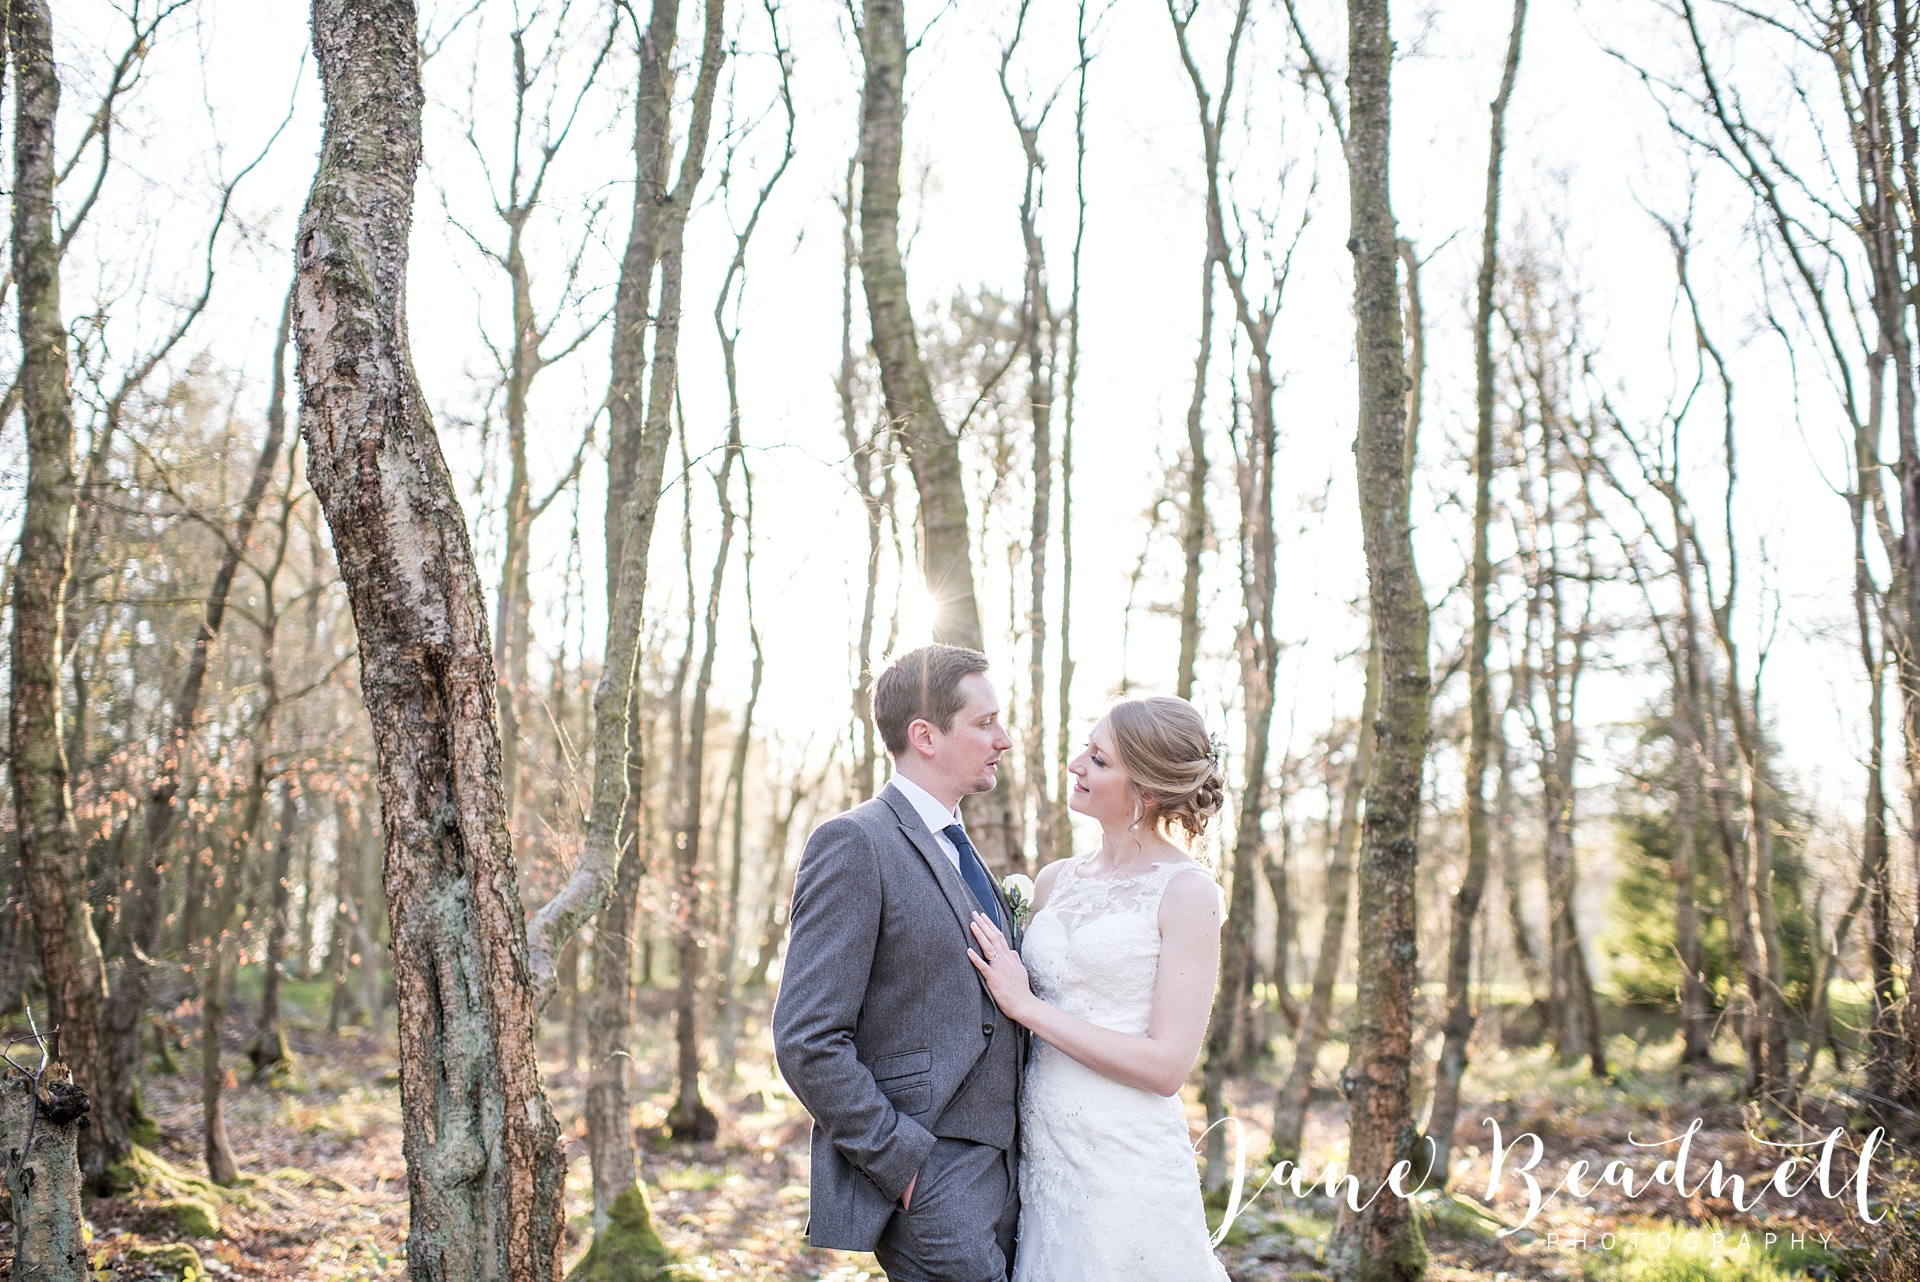 Otley Chevin Lodge wedding photography by Jane Beadnell Photography Leeds_0123